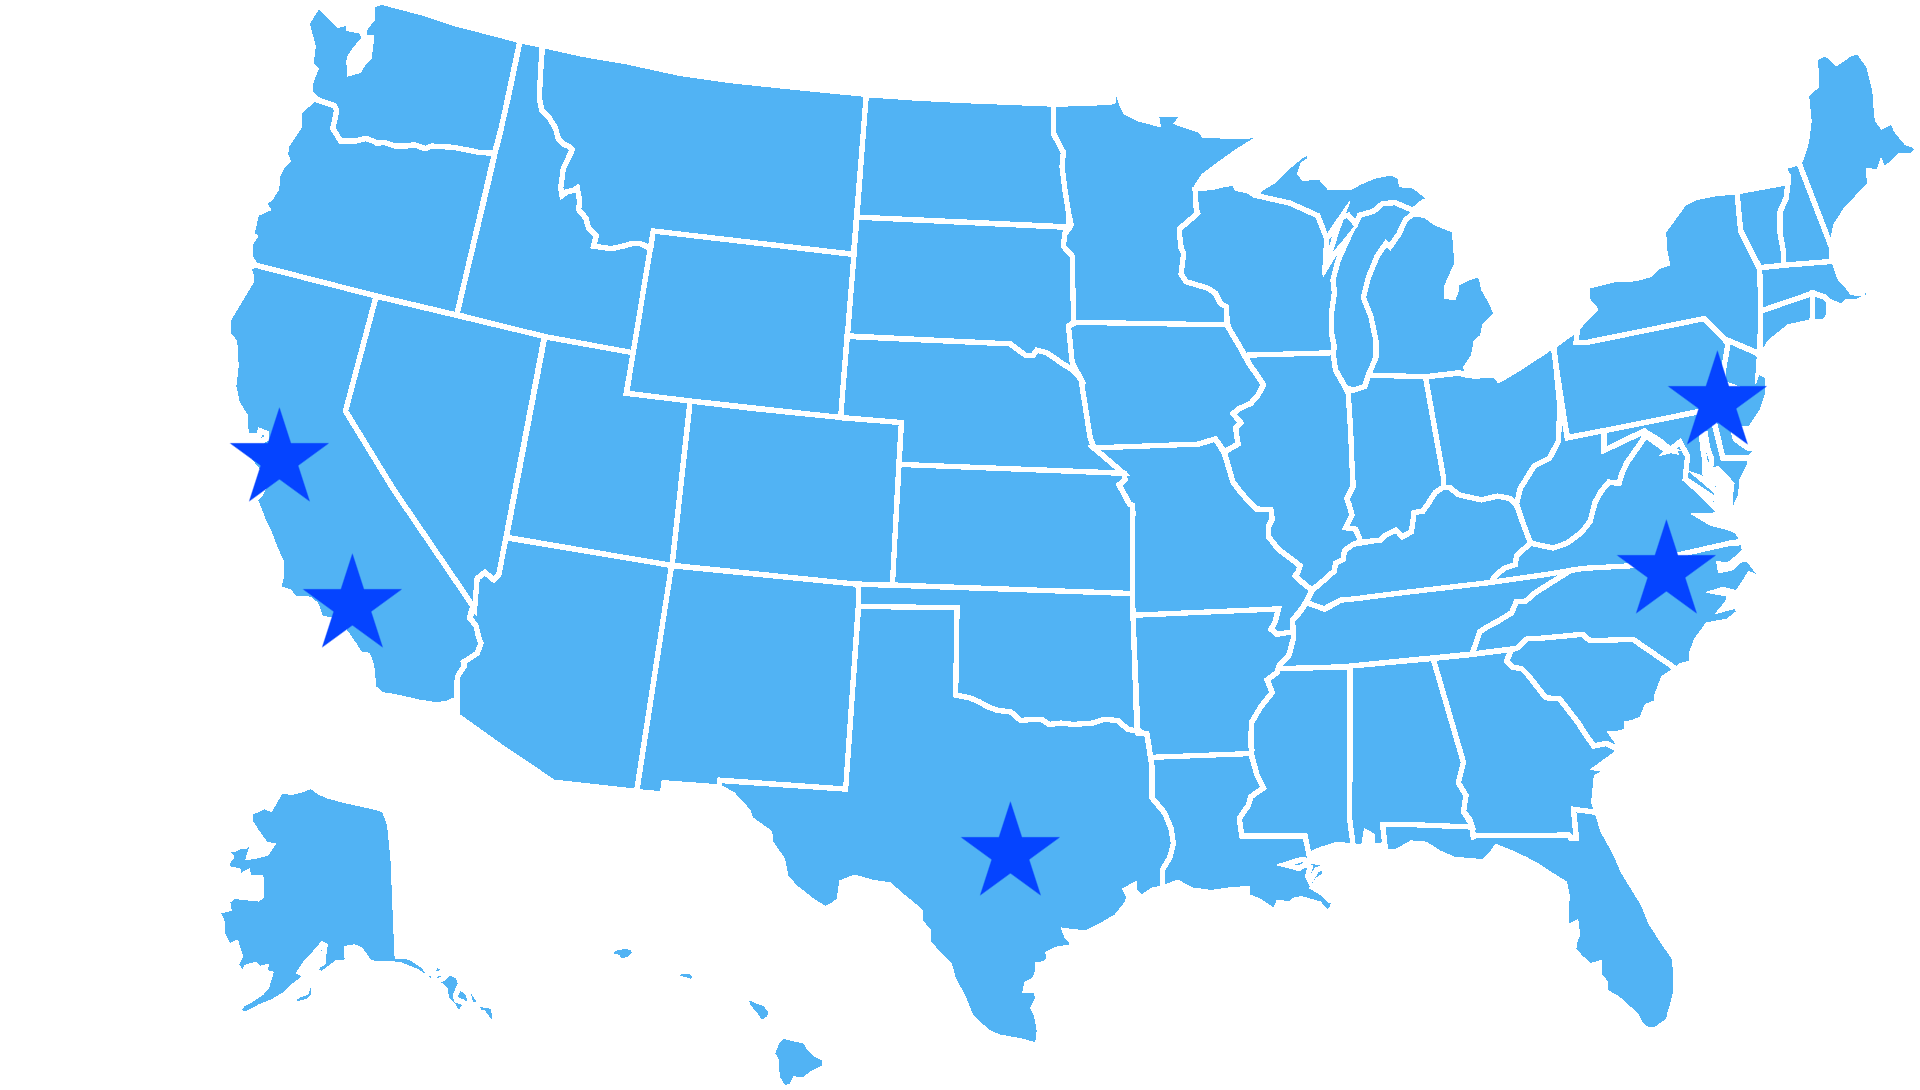 office locations starred on blue map of united states